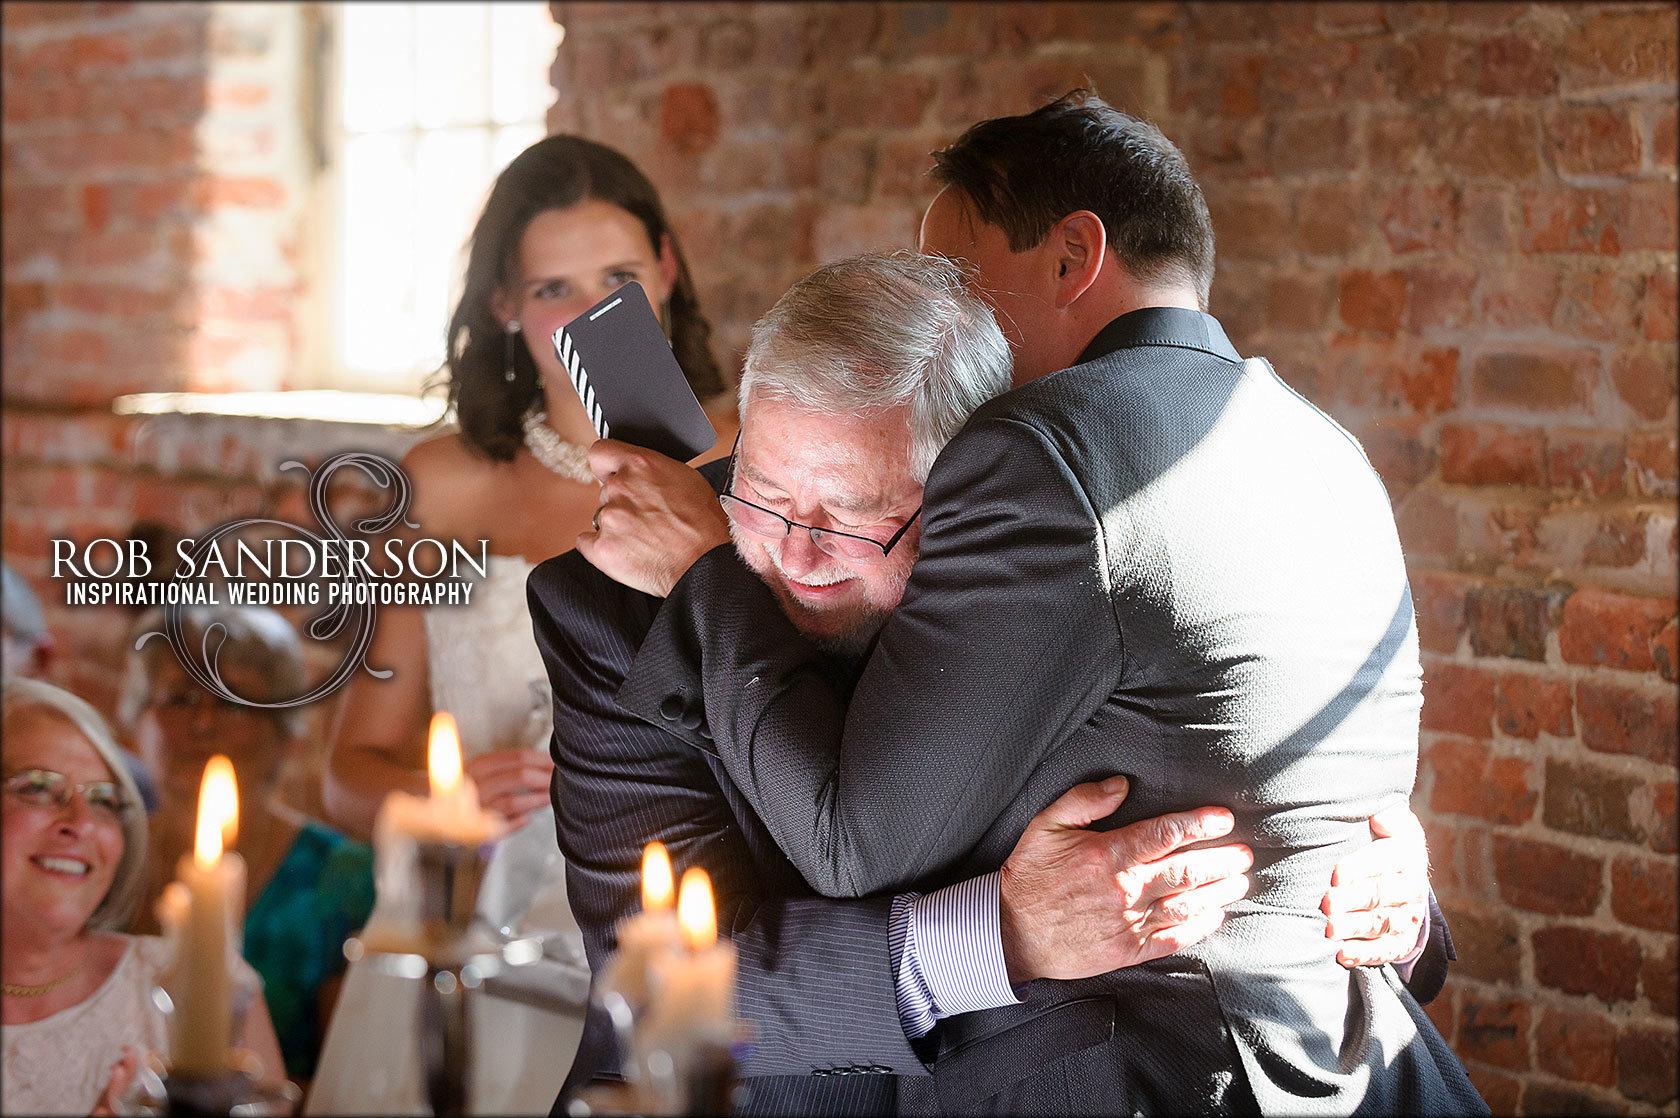 moving moment between the groom and his father